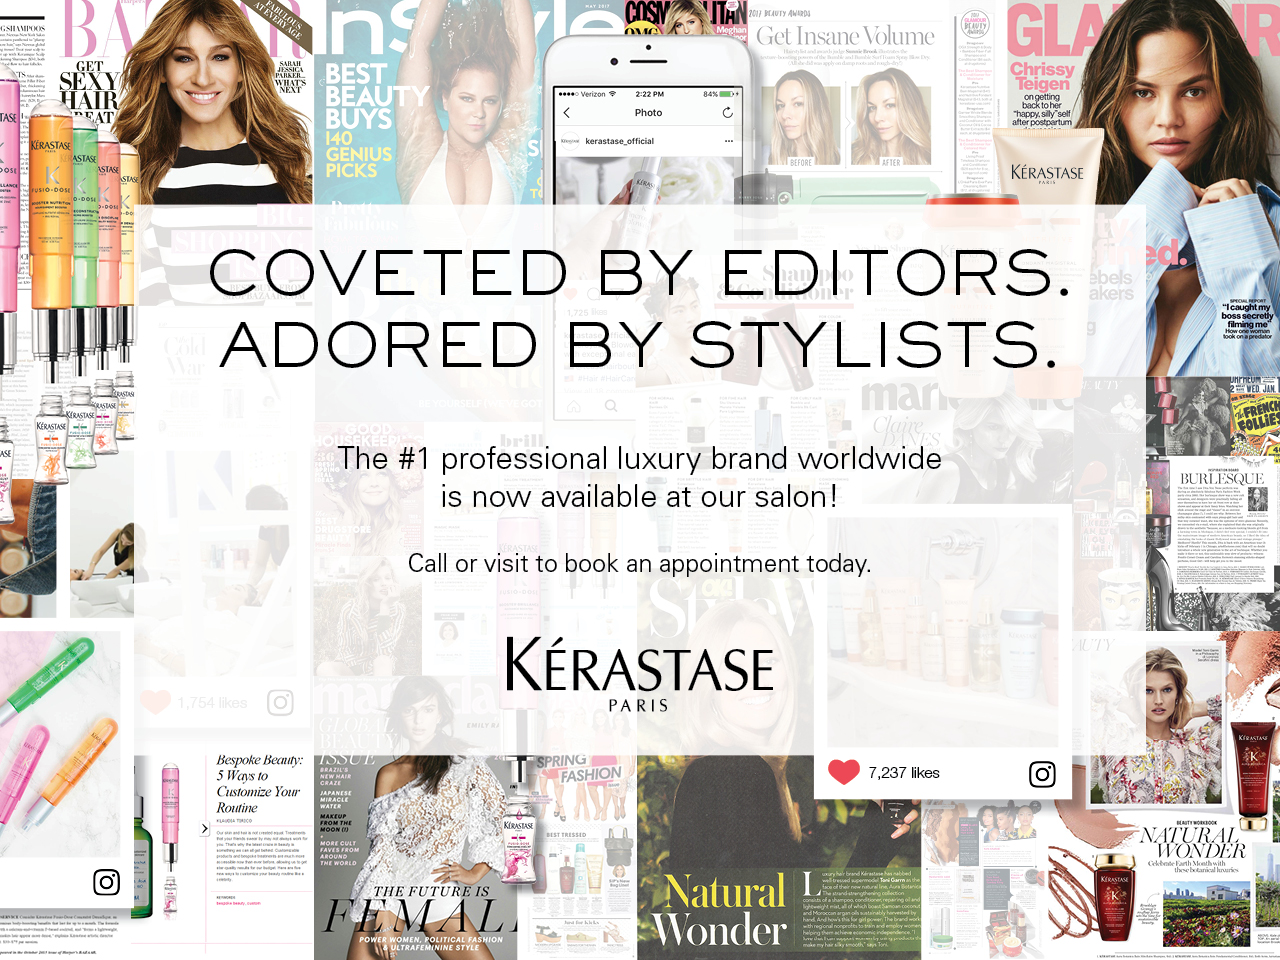 Kerastase Announcement - PR Focused.jpg